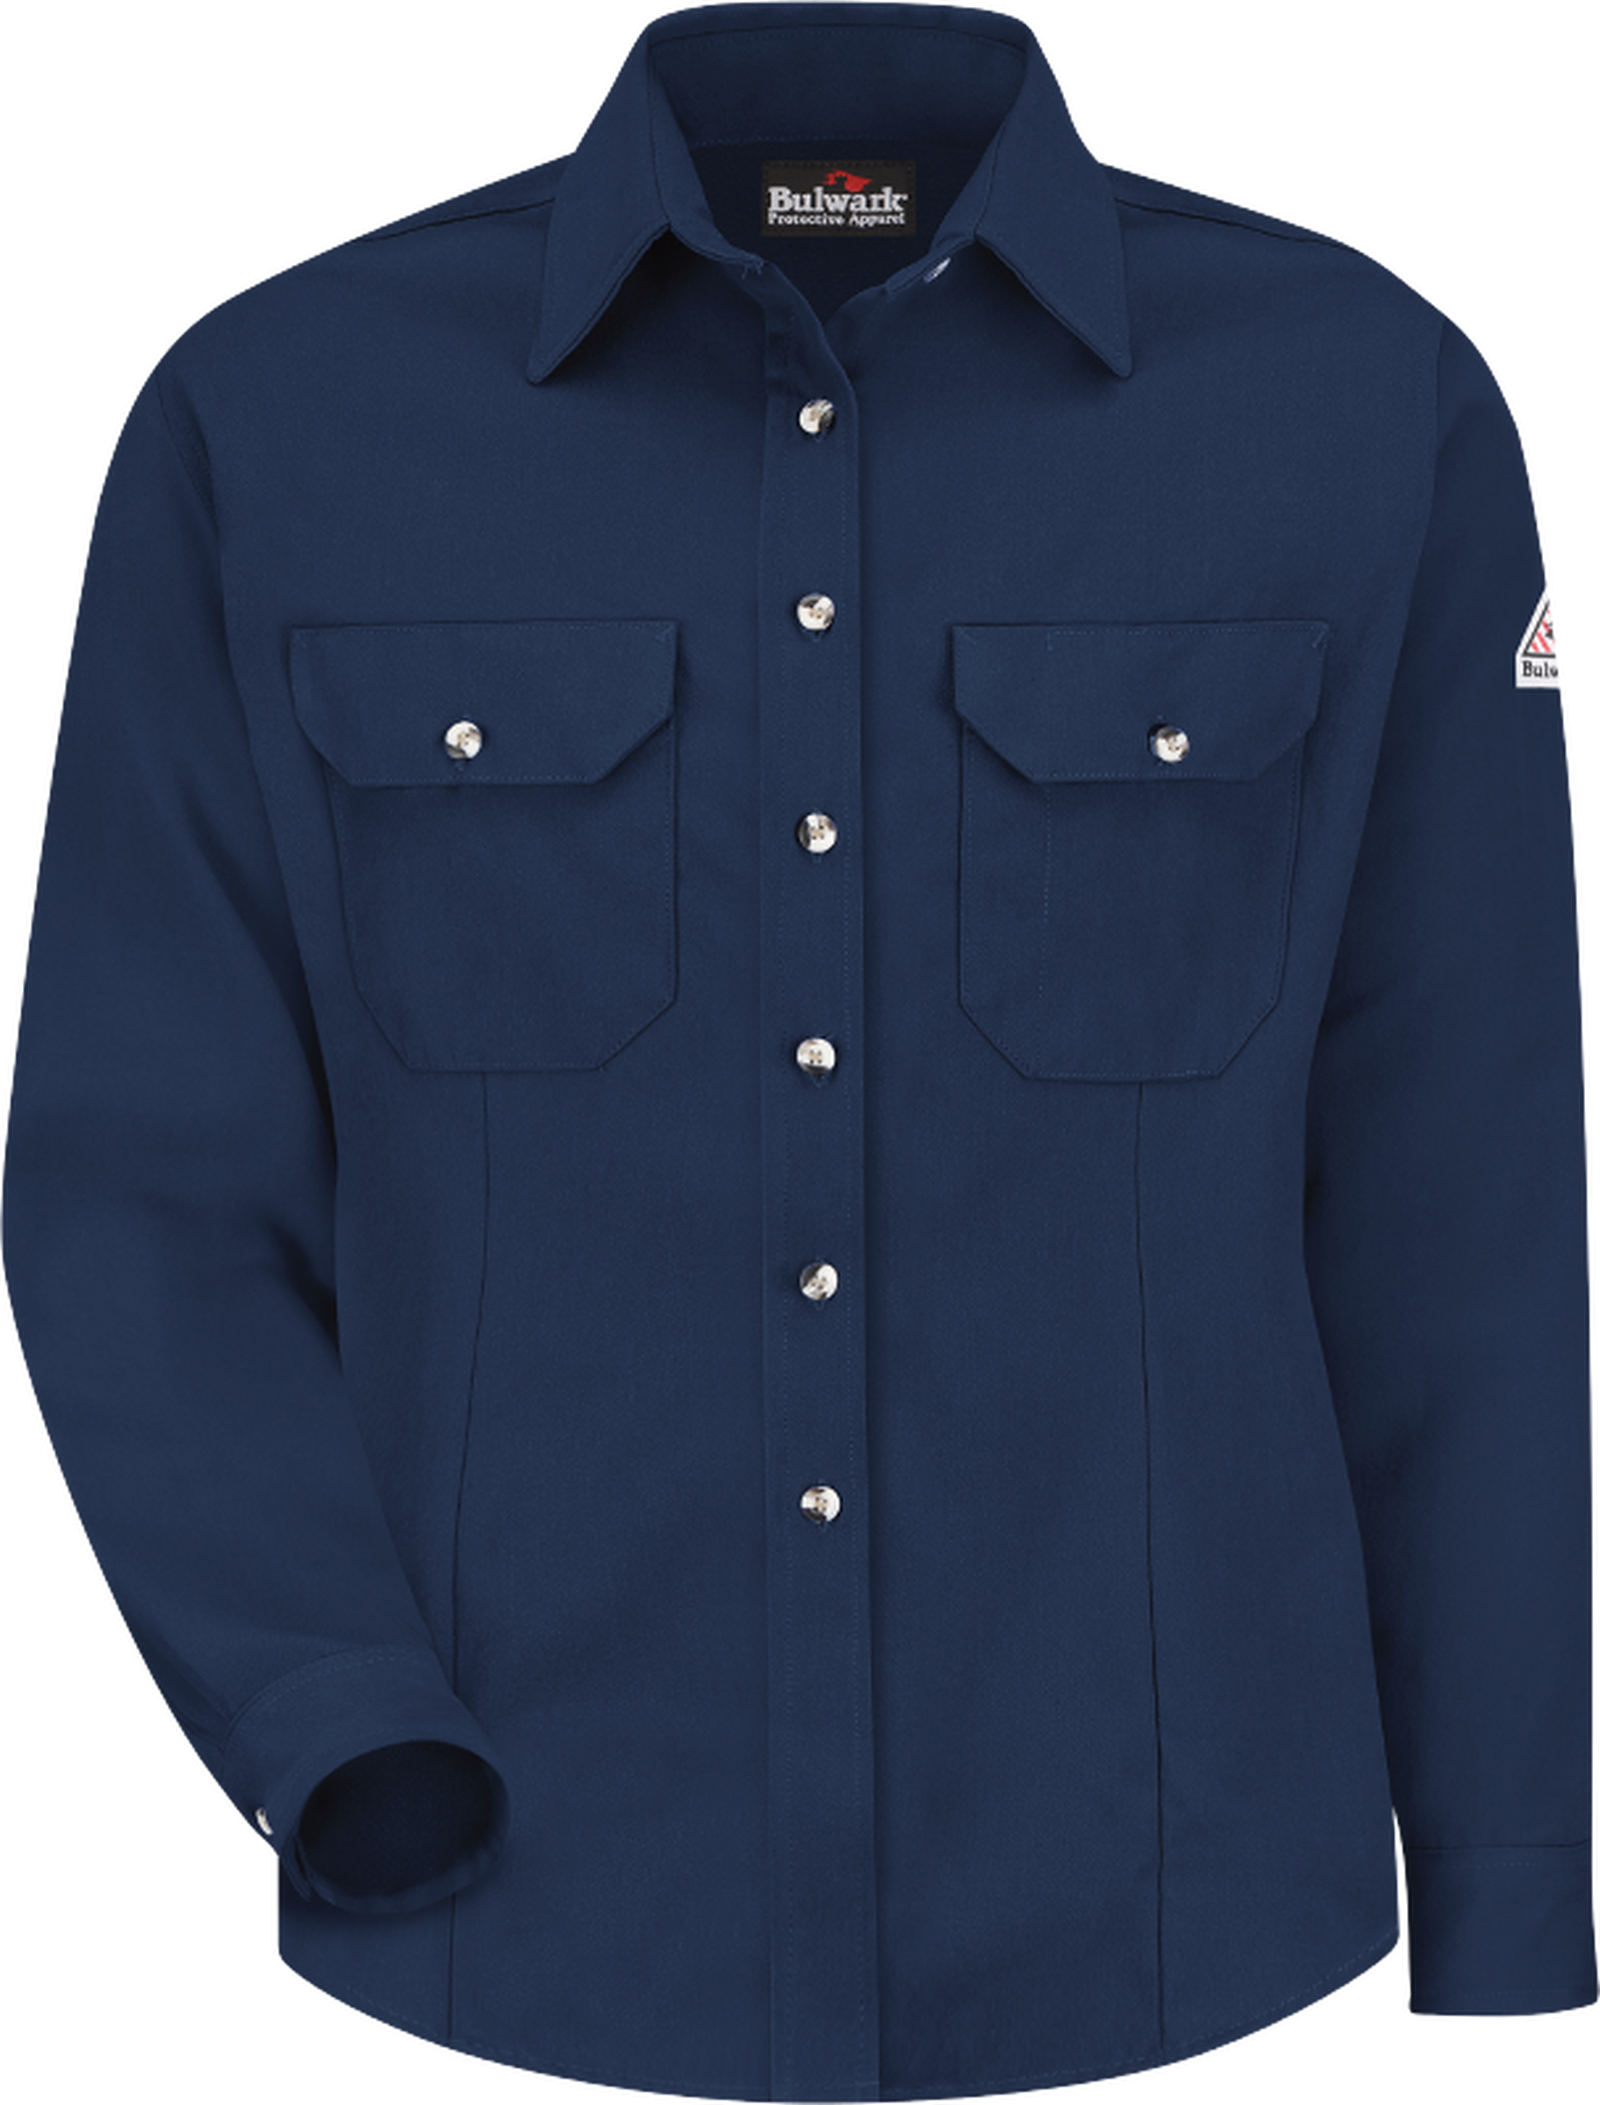 Women's Midweight FR Dress Uniform Shirt CAT 2